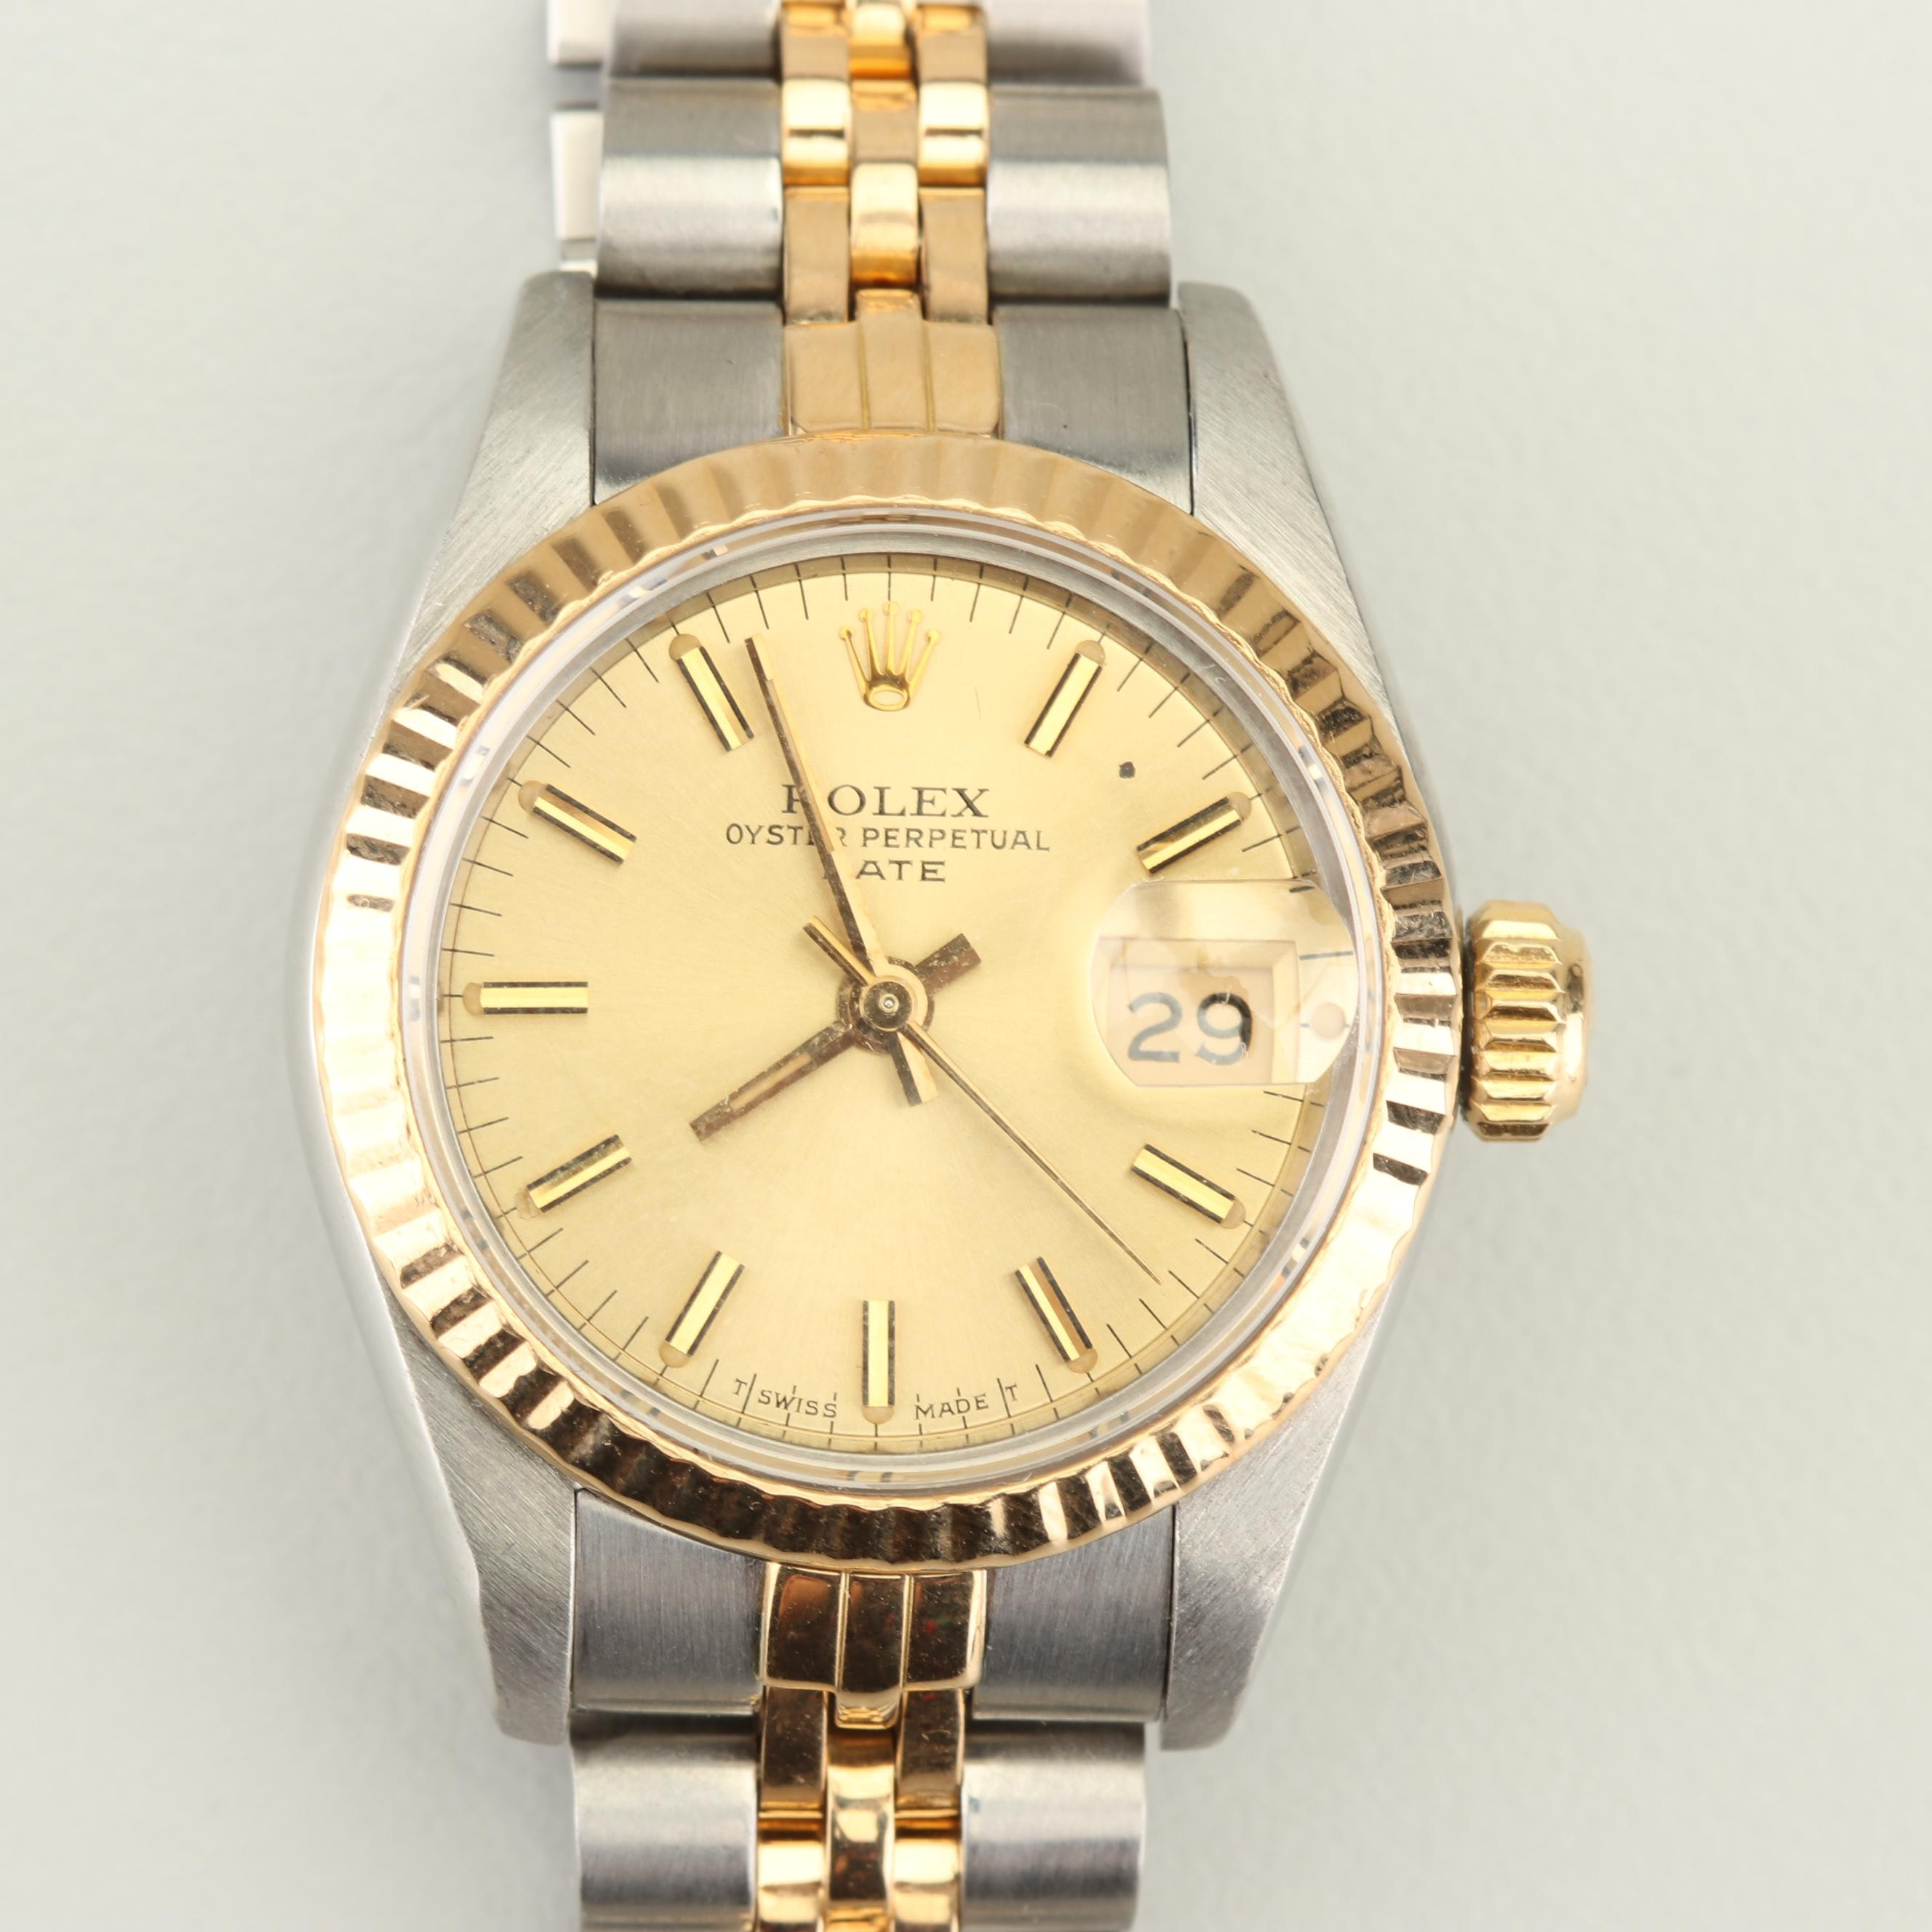 Vintage Rolex Oyster Perpetual Stainless Steel and 18K Yellow Gold Wristwatch